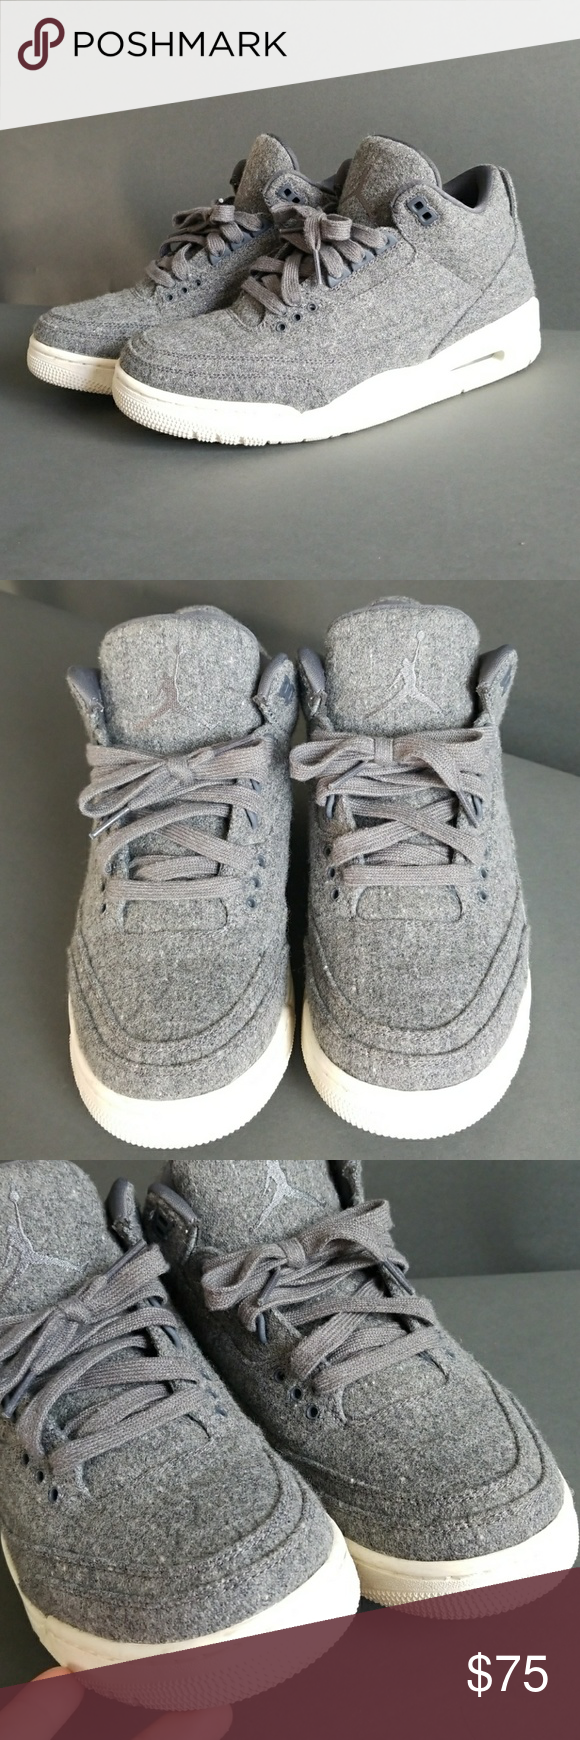 28bec3fc28aa AIR JORDAN 3 RETRO GOAT WOOL Men s 8 In excellent condition like new worn  few times. Perfect for weather like this wool sneakers Air Jordan Shoes